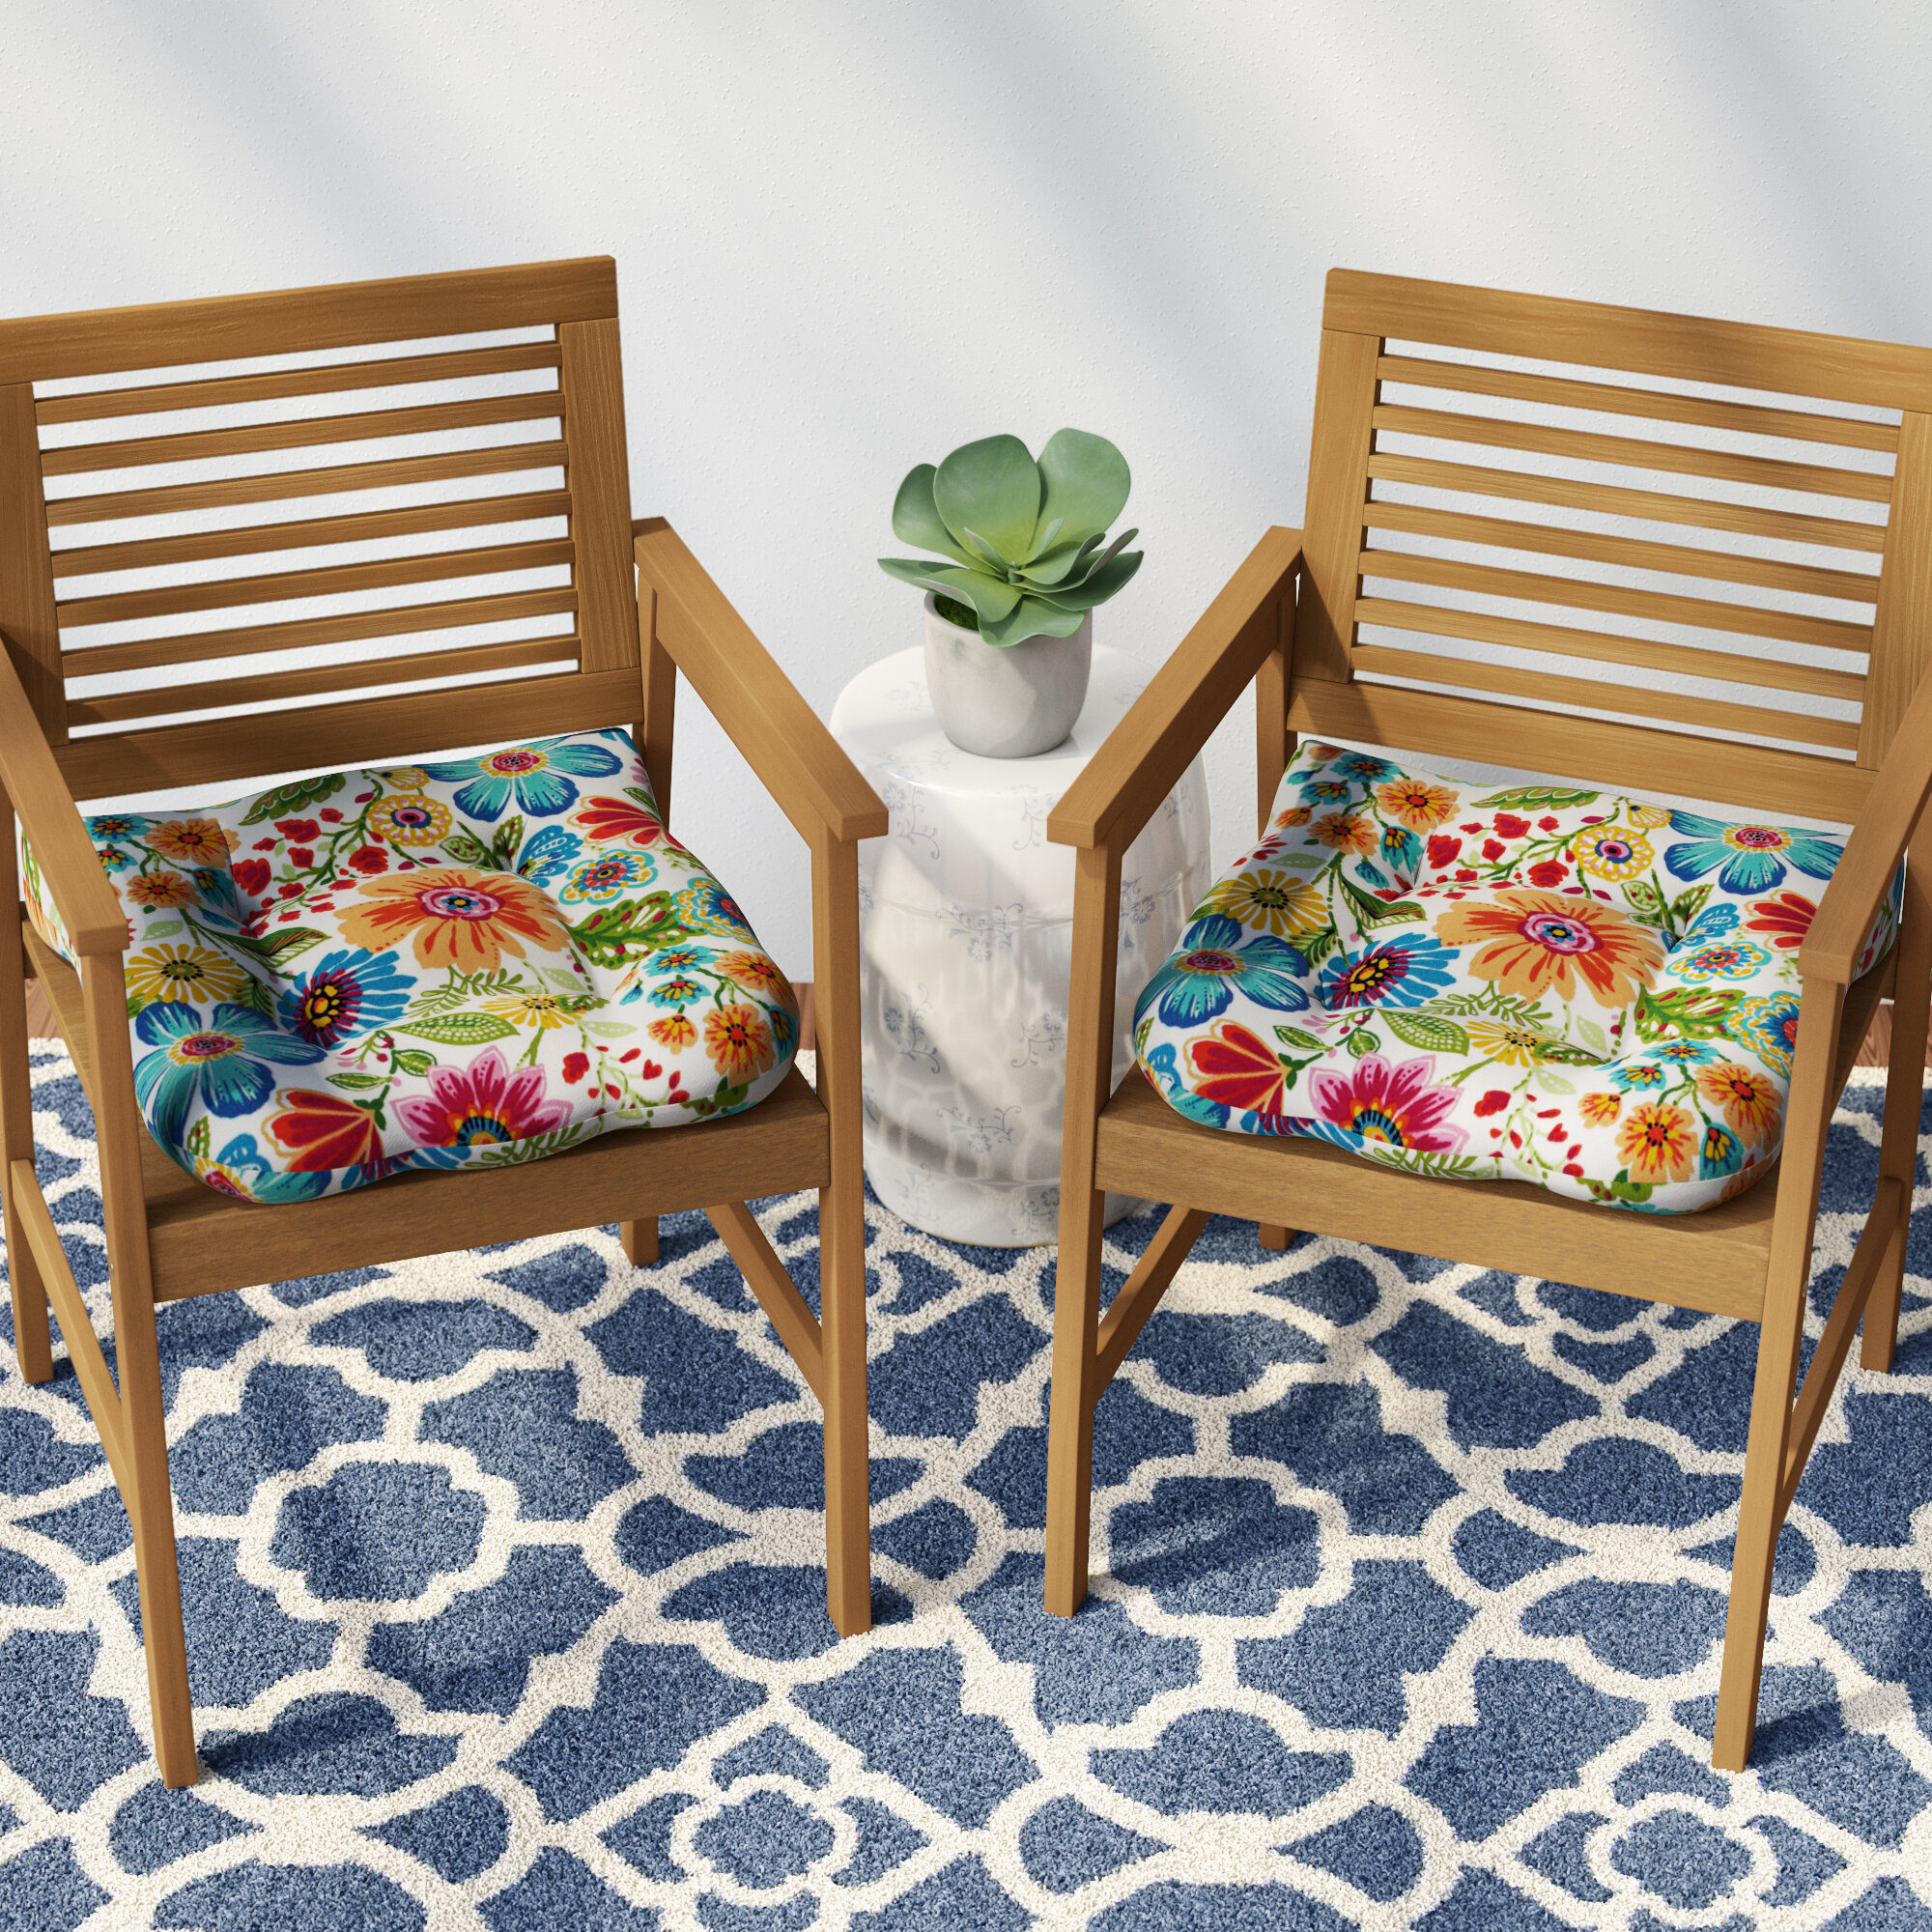 Details About Winston Porter Indoor Outdoor Patio Chair Cushion Set Of 2